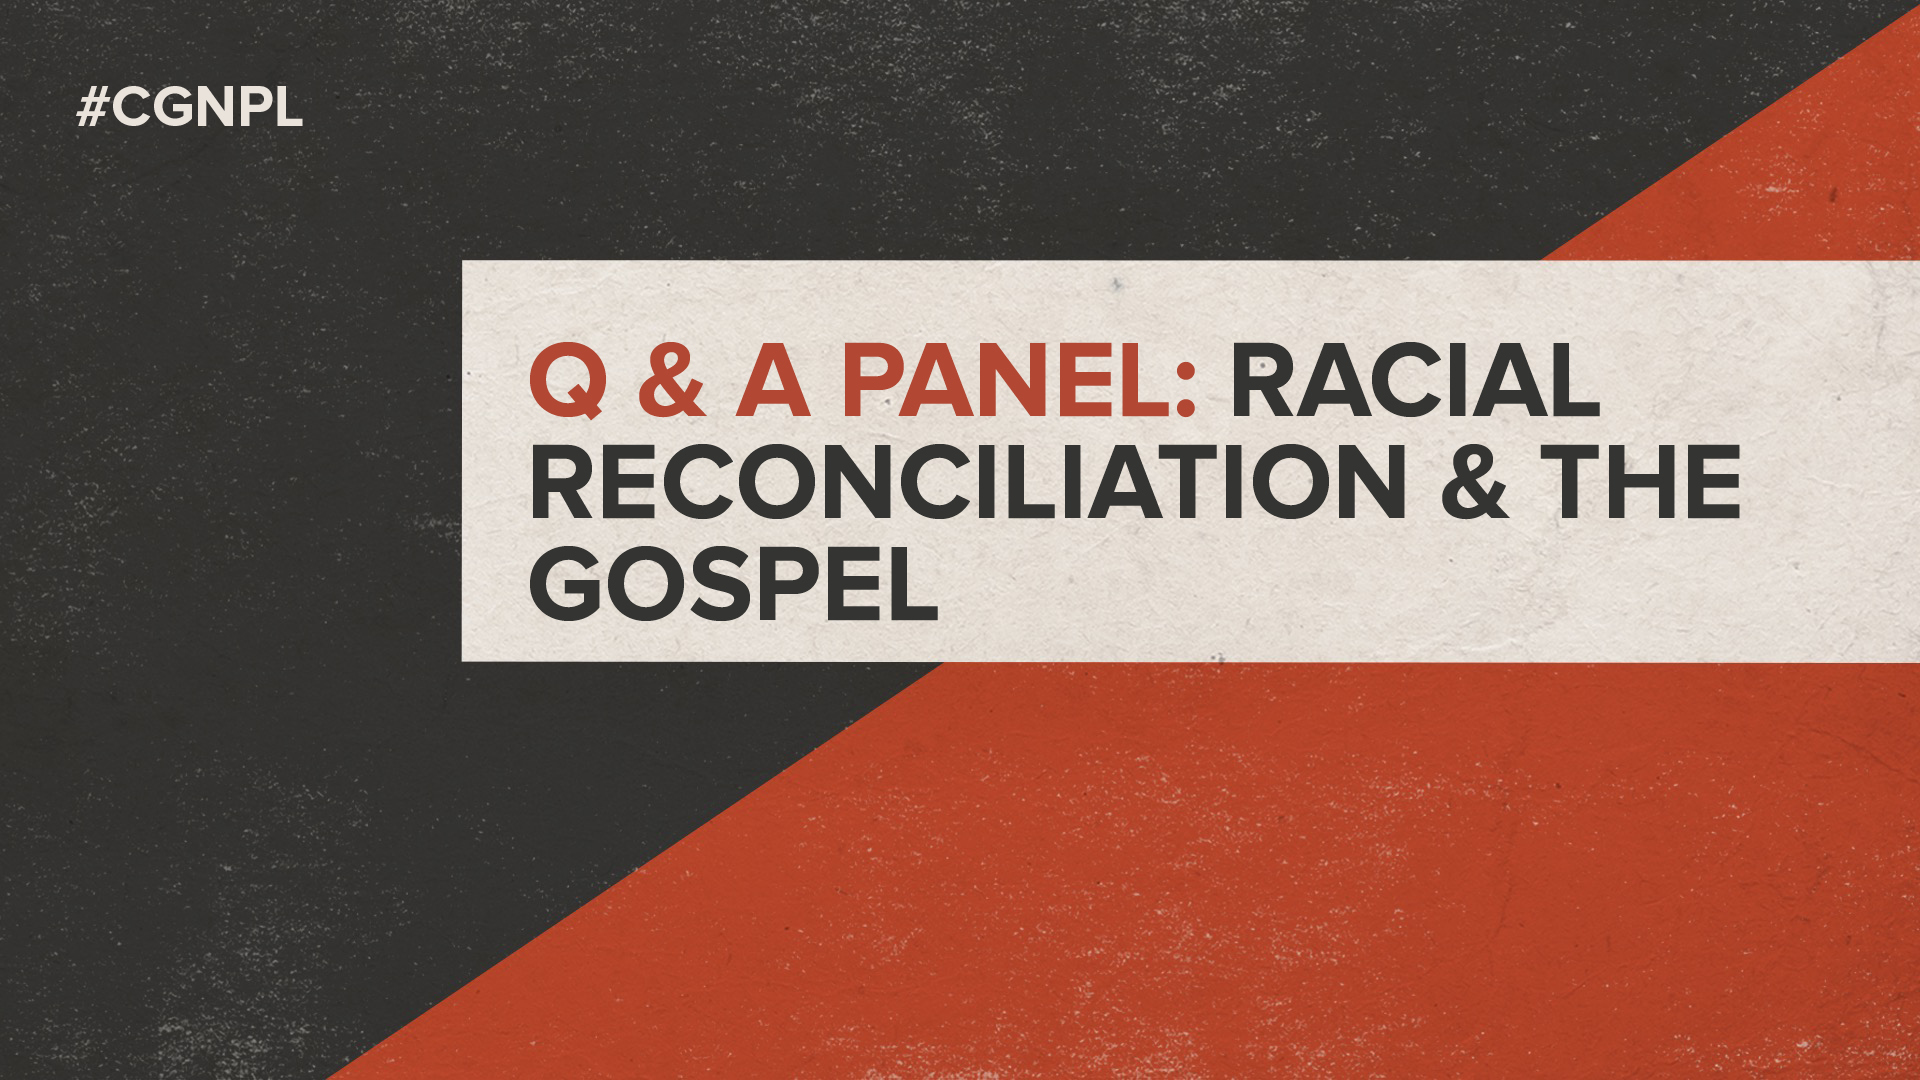 Q&A Panel: Racial Reconciliation & the Gospel